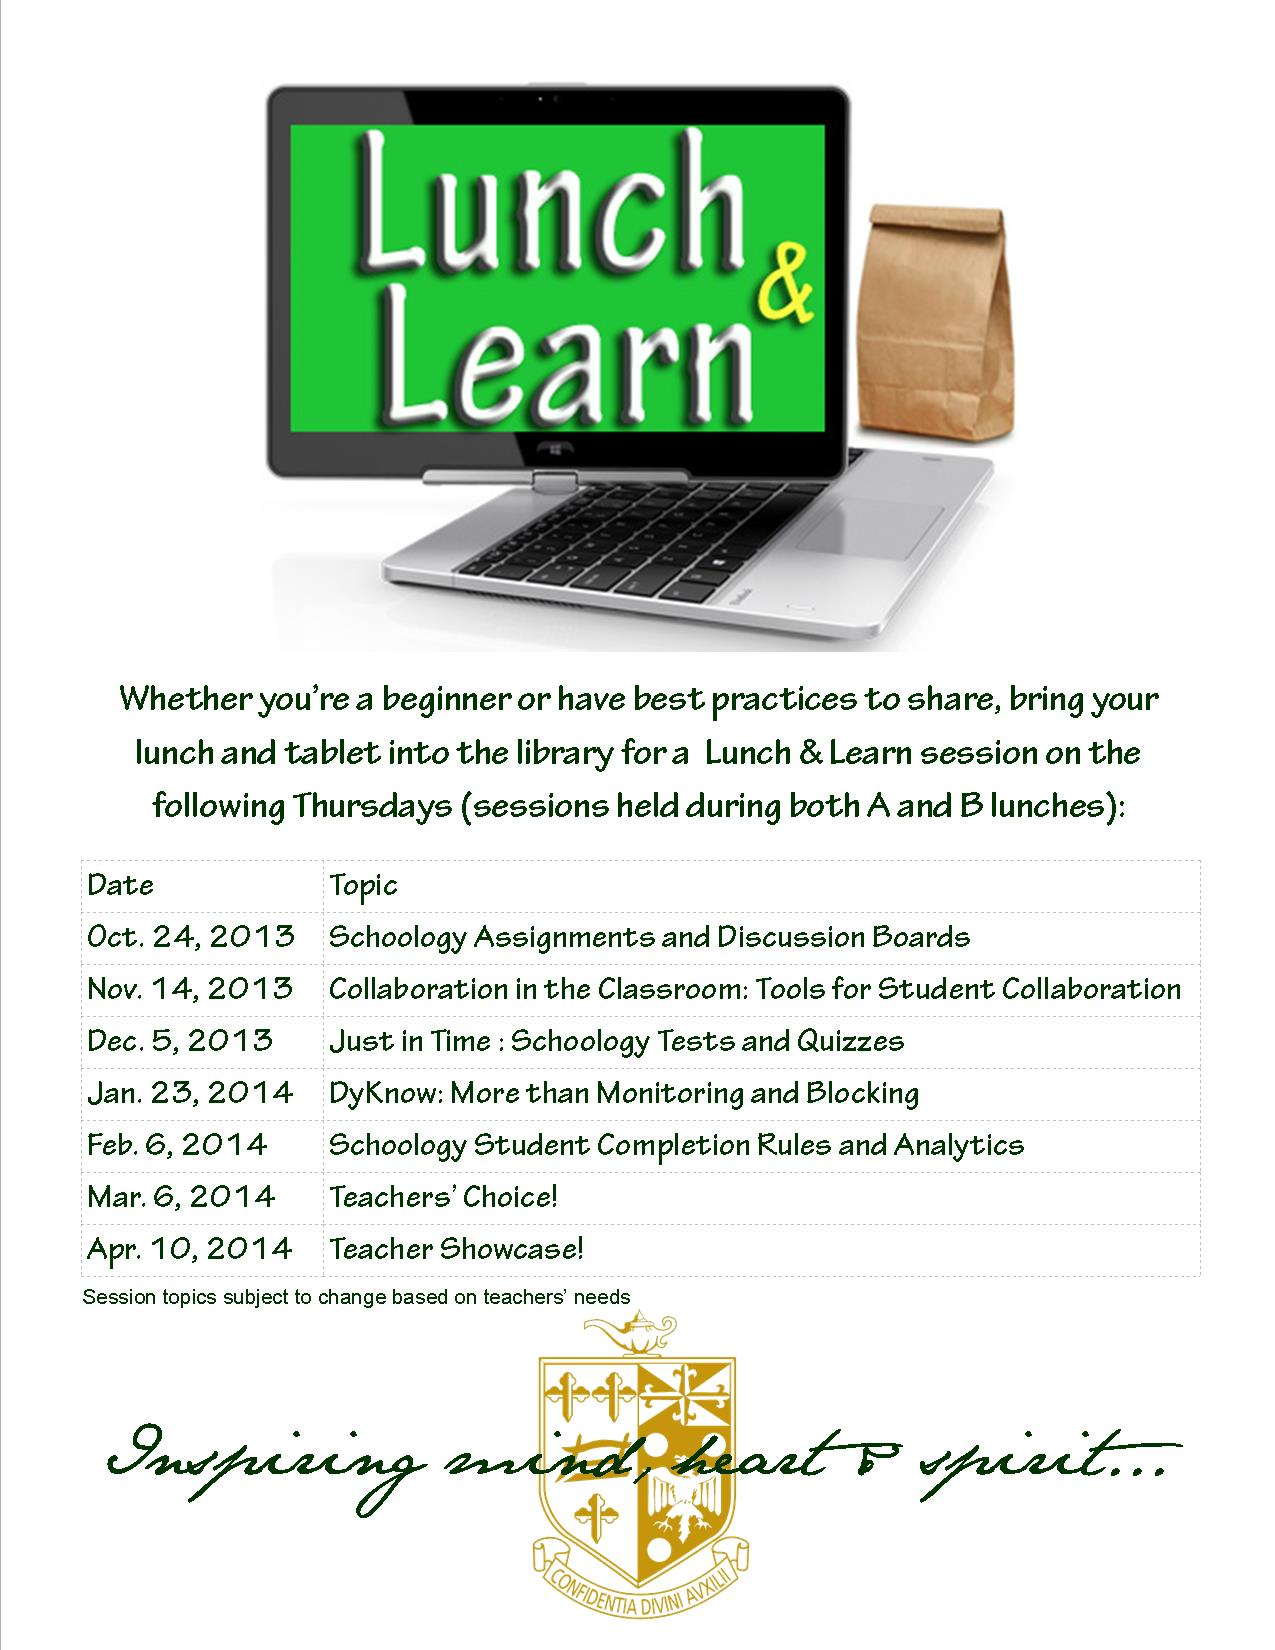 Developing a Lunch and Learn: Corporate Training Materials